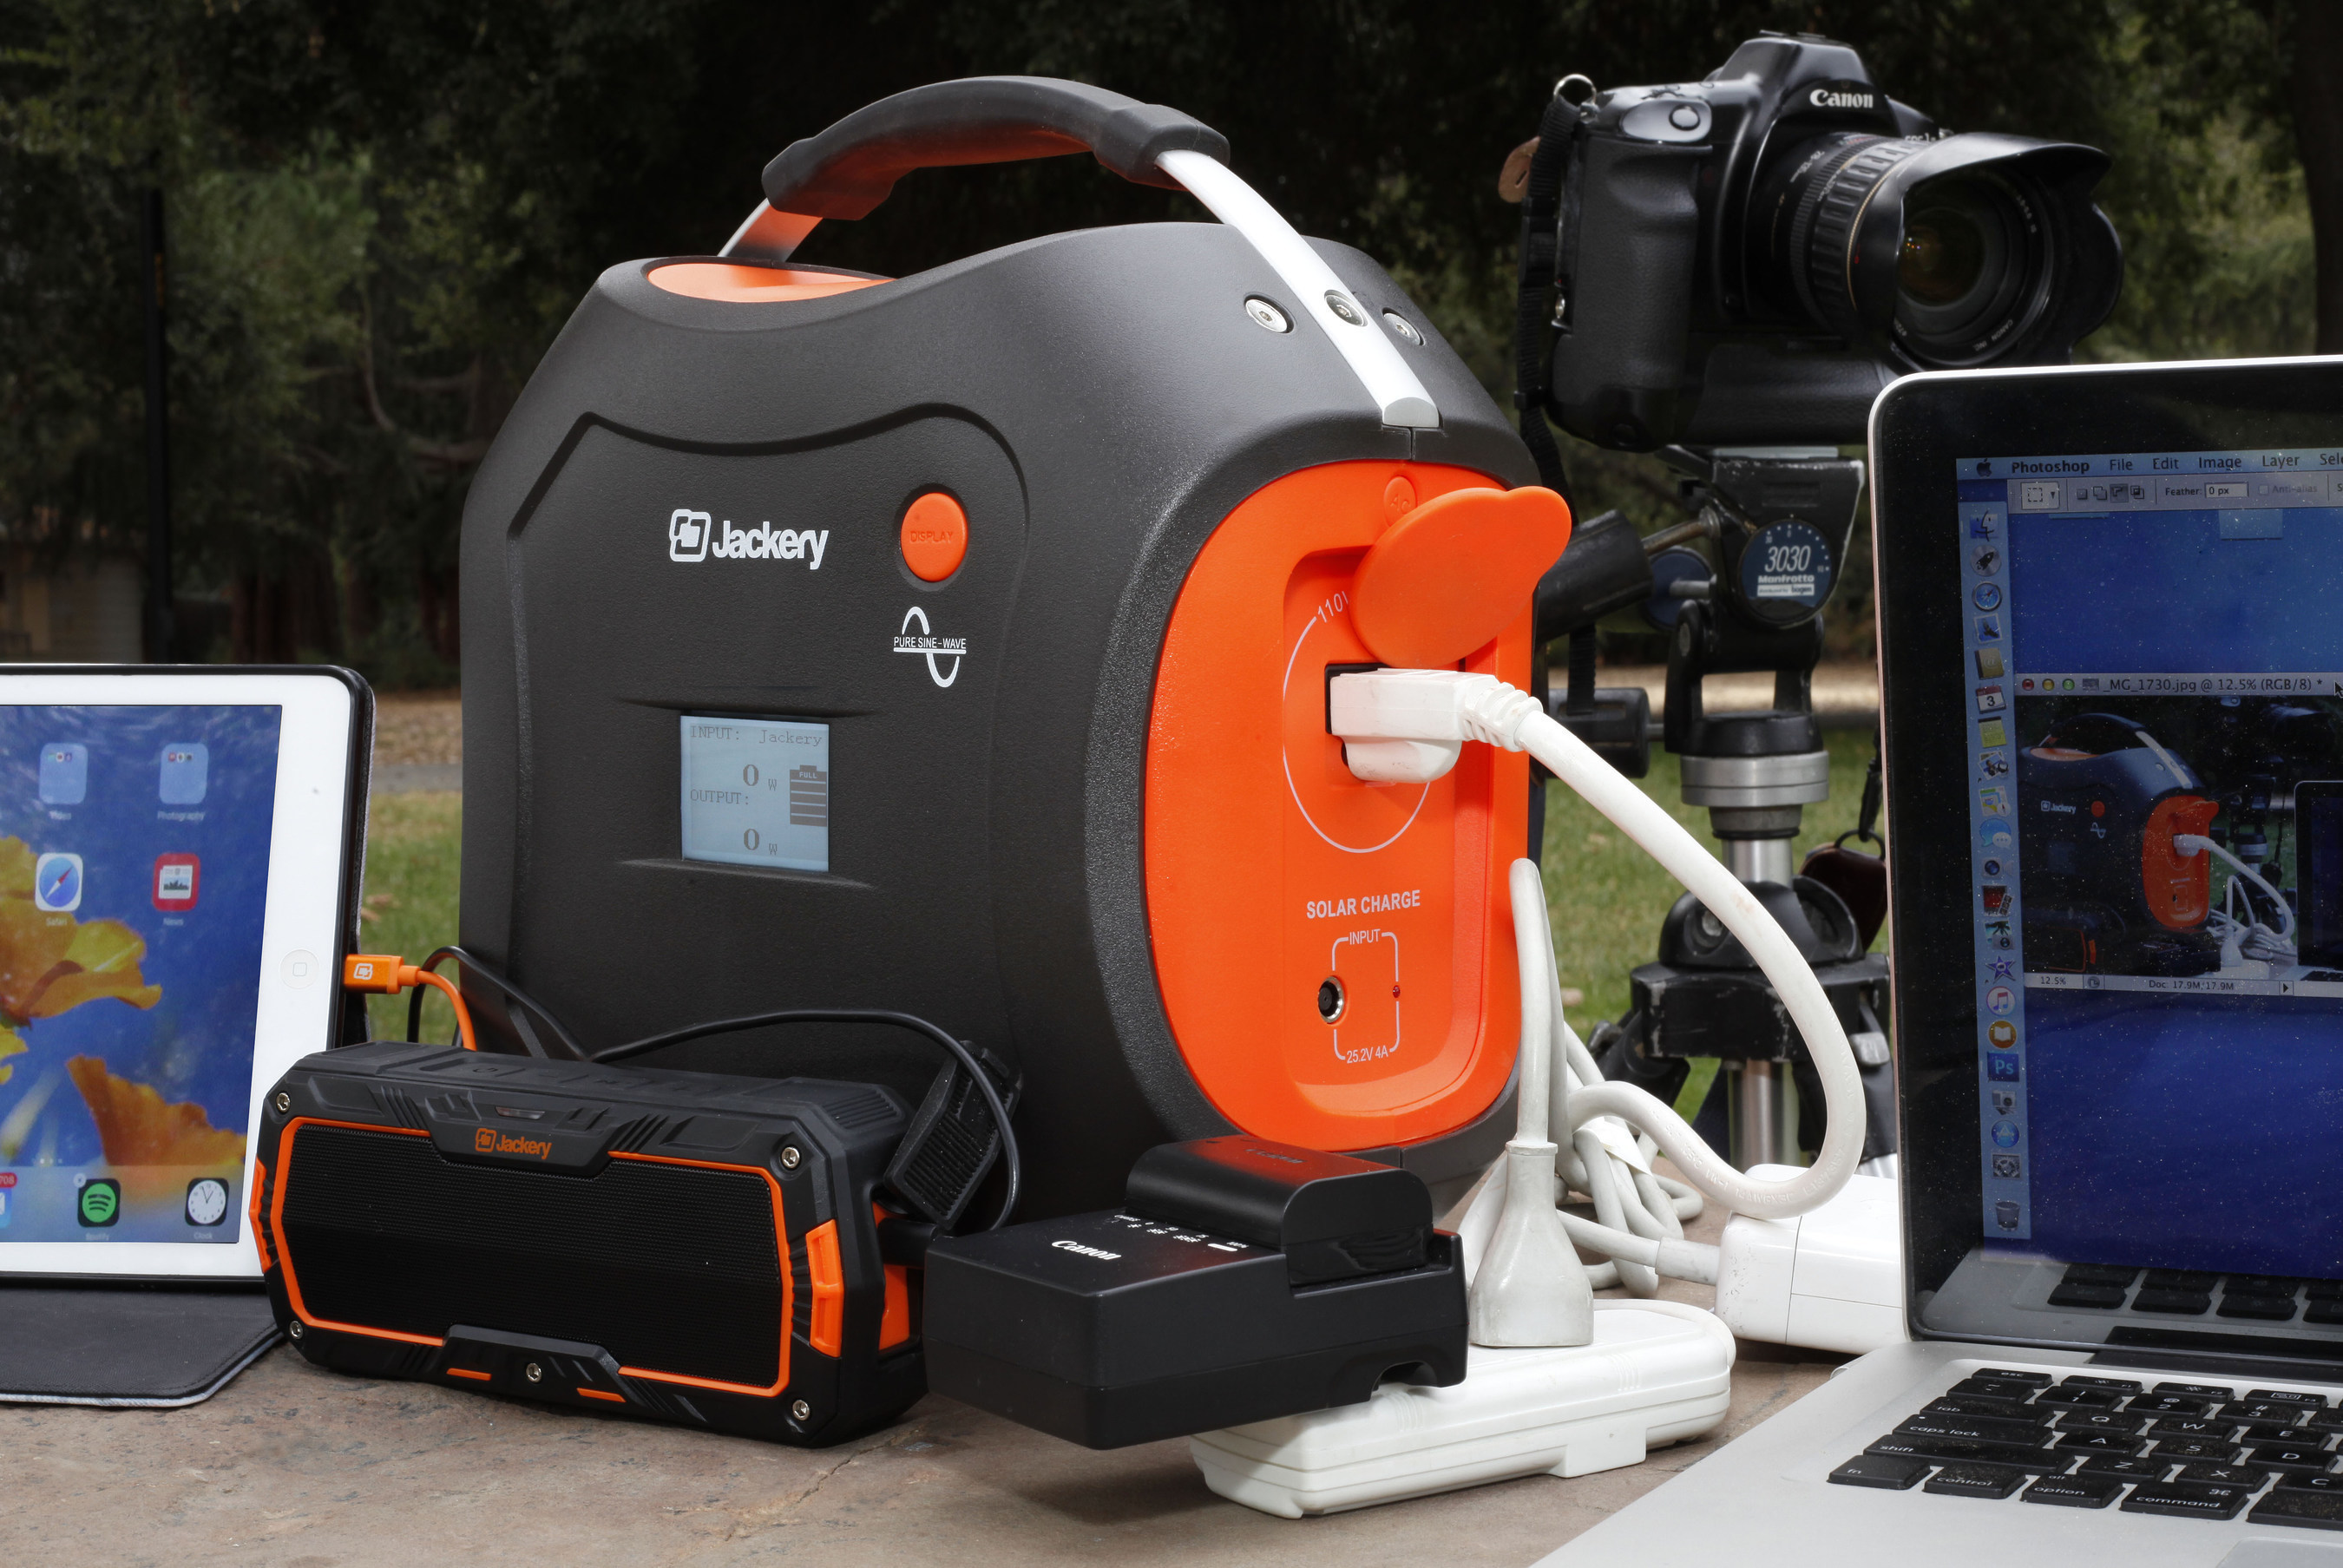 Jackery Launches Kickstarter Campaign for Portable & Powerful 578Wh Solar Ready Outdoor Generator